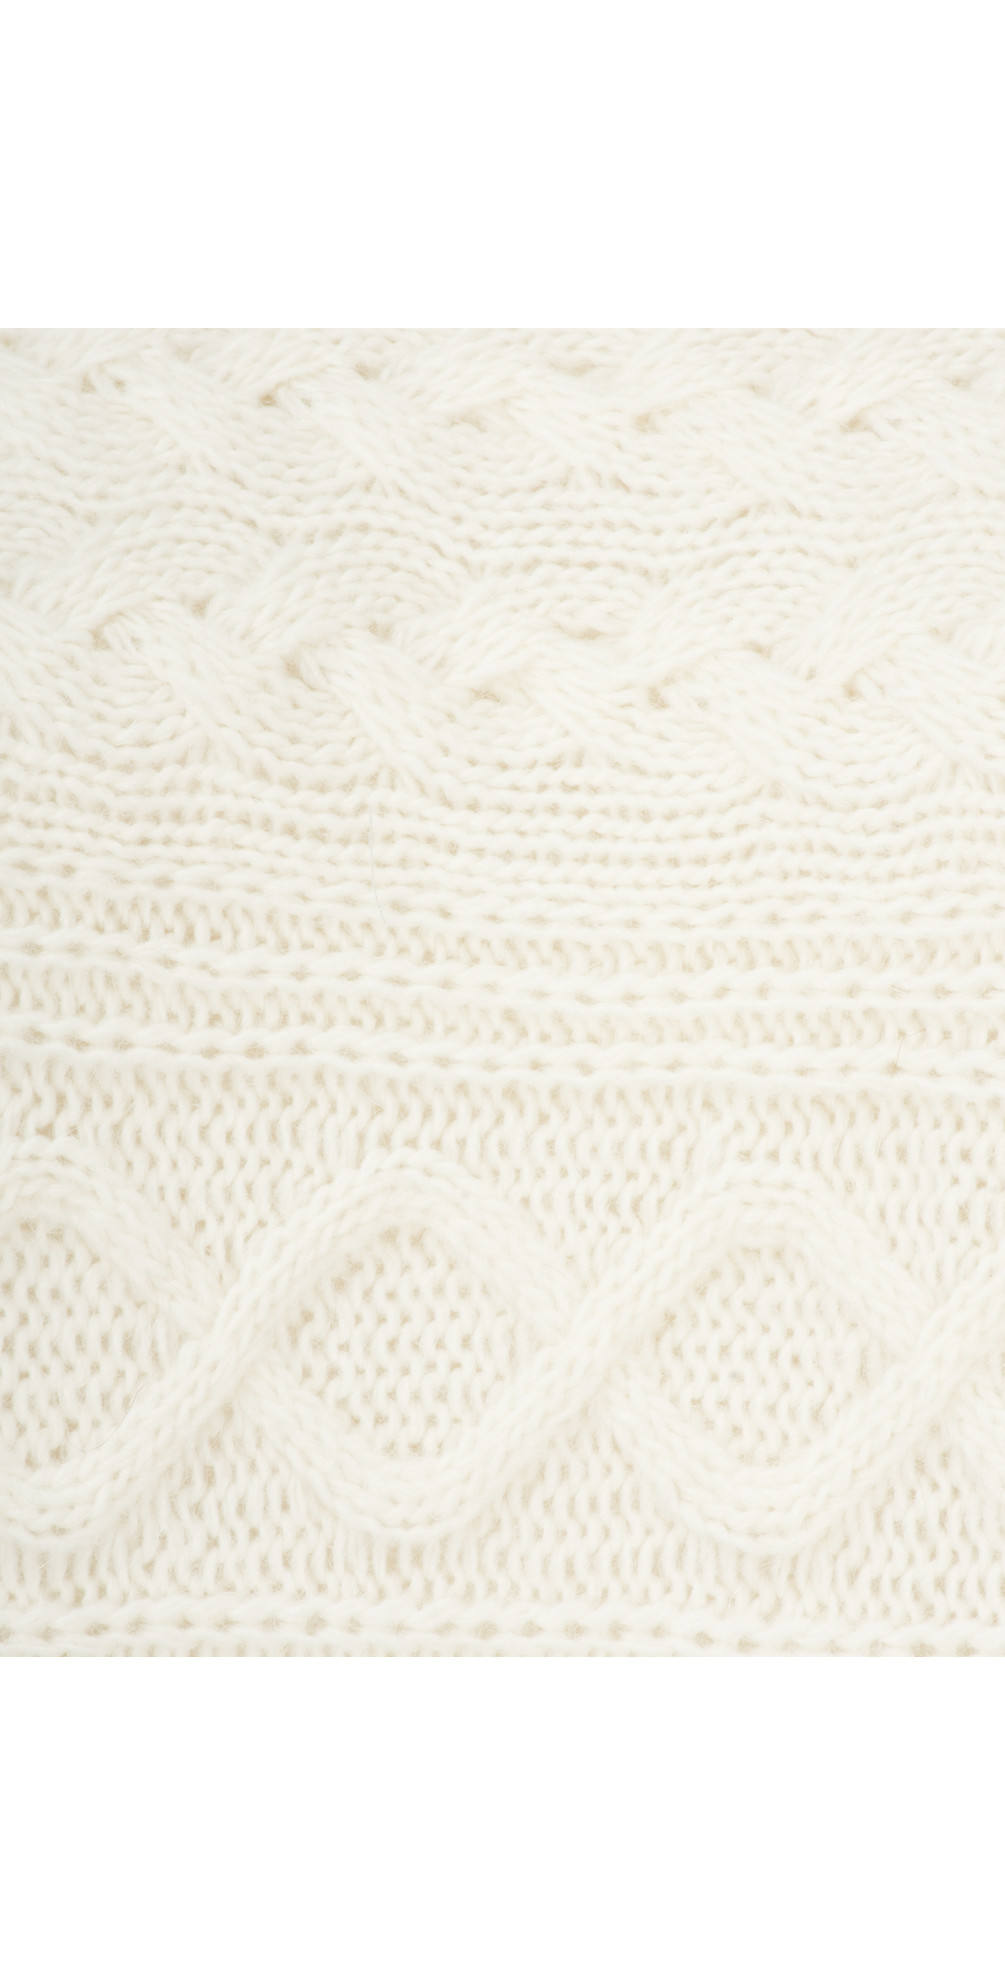 Luxe Patterned Knit Jumper main image